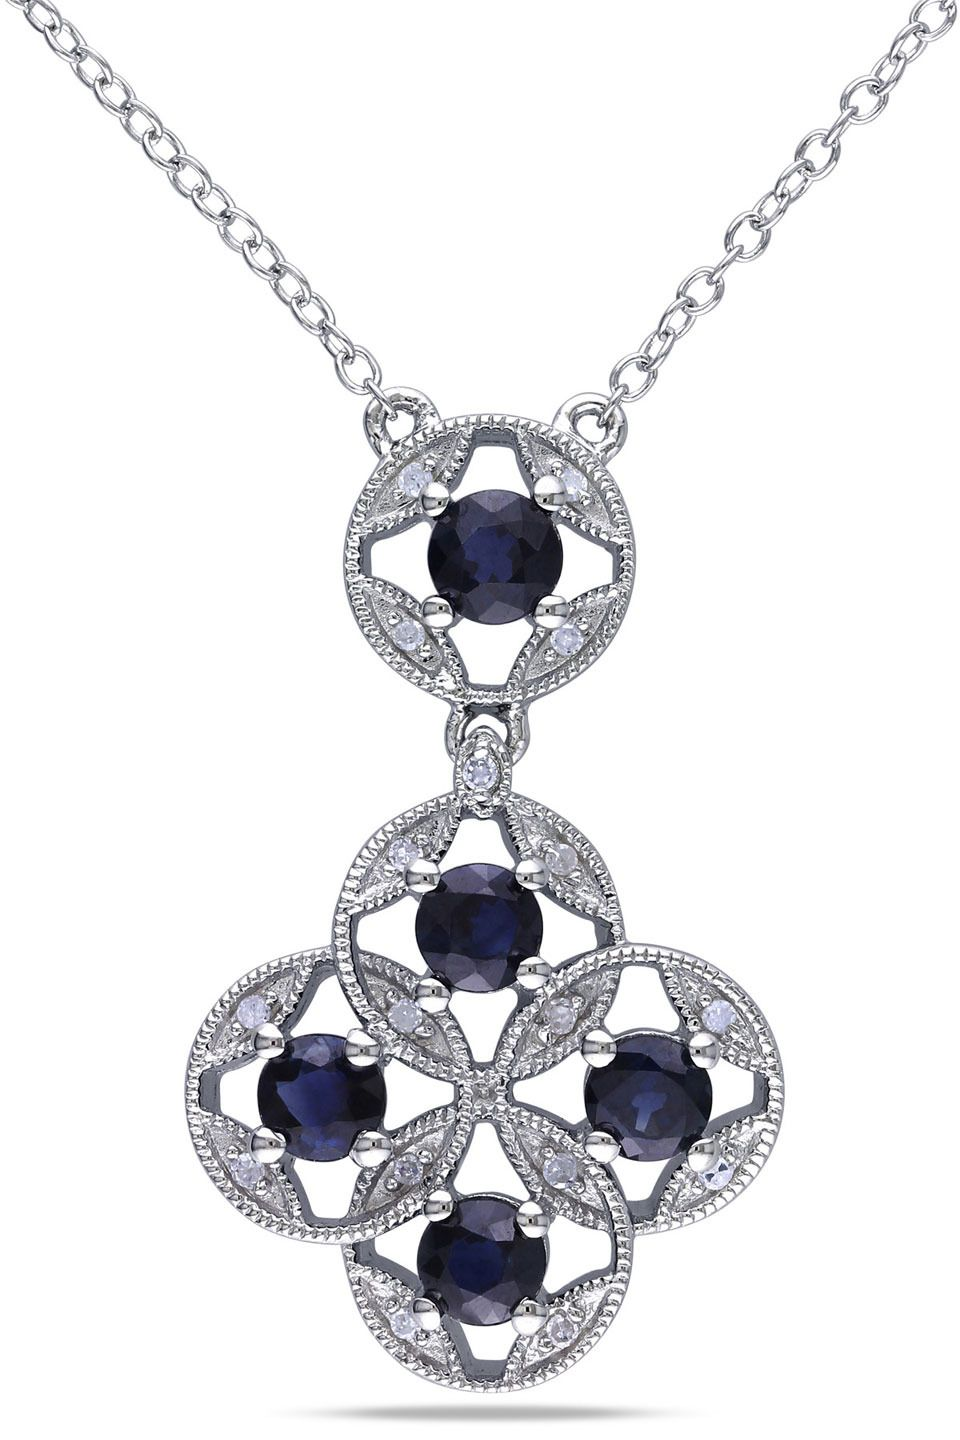 Vintage Inspired 1 3 8 Ct Sapphire And 1 10 Ct Diamond Silver Pendant Beyond The Rack Jewelry Sterling Silver Pendants Sterling Silver Necklace Pendants